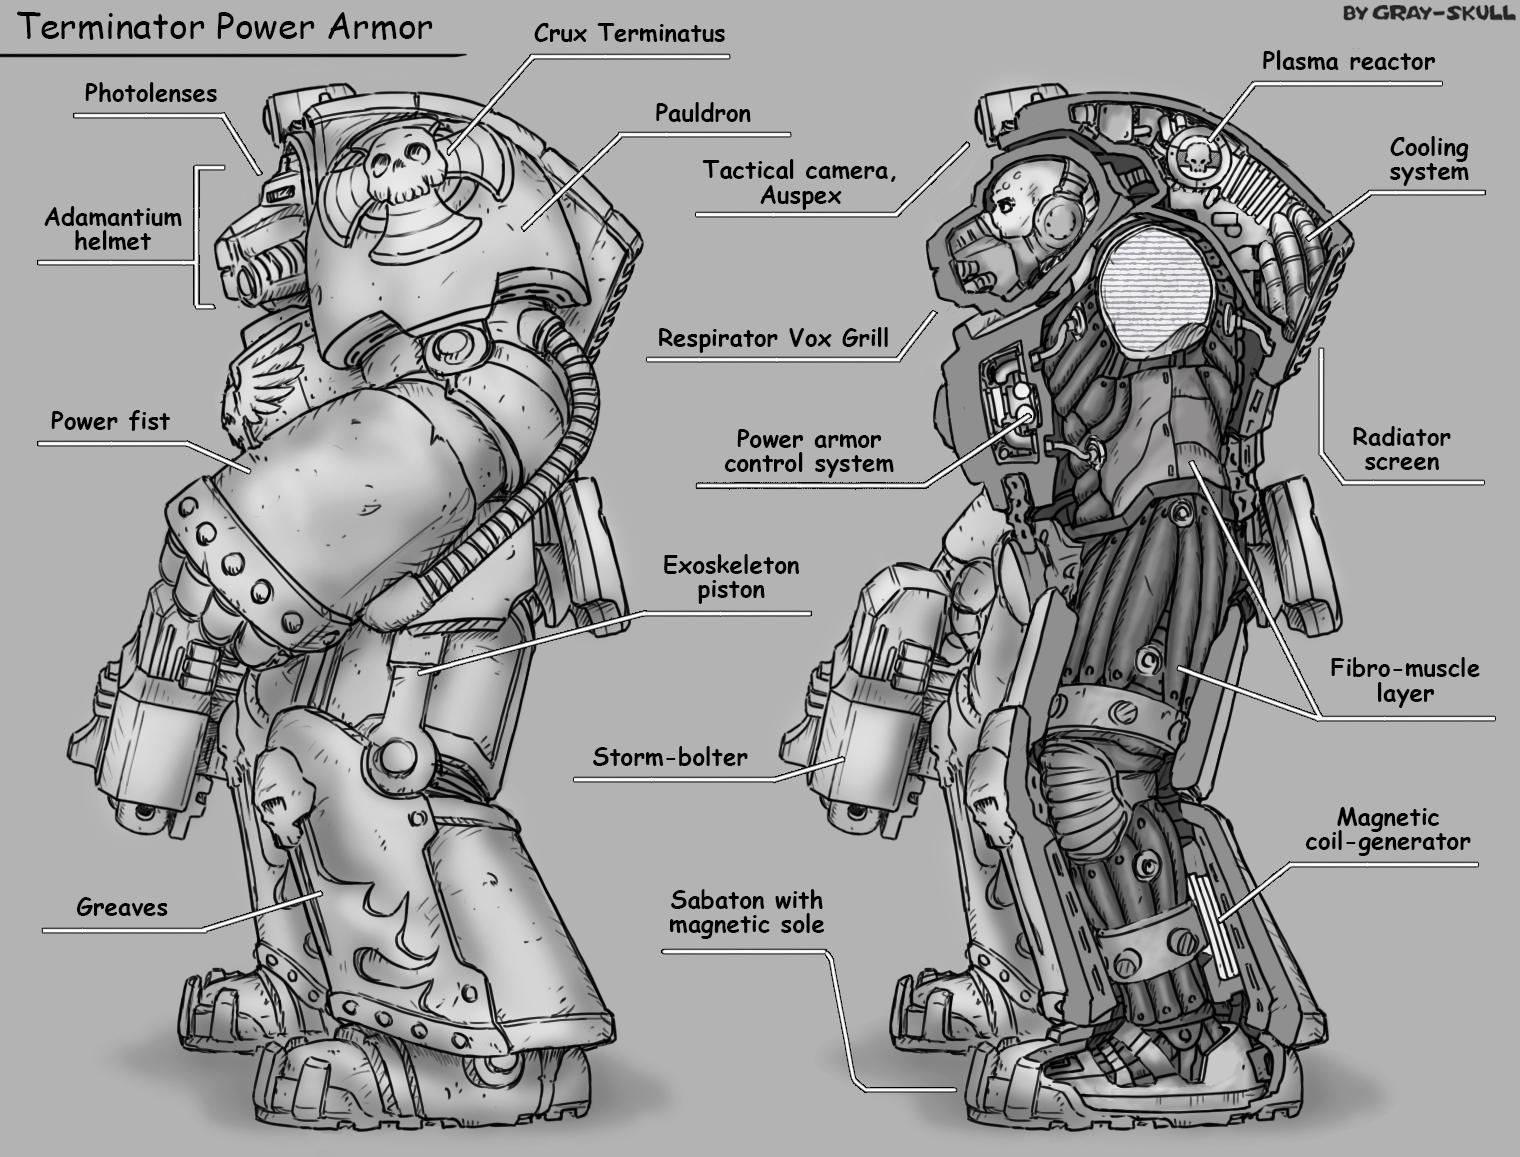 Warhammer Weapon Armor Vehicles And Aircraft Part 3